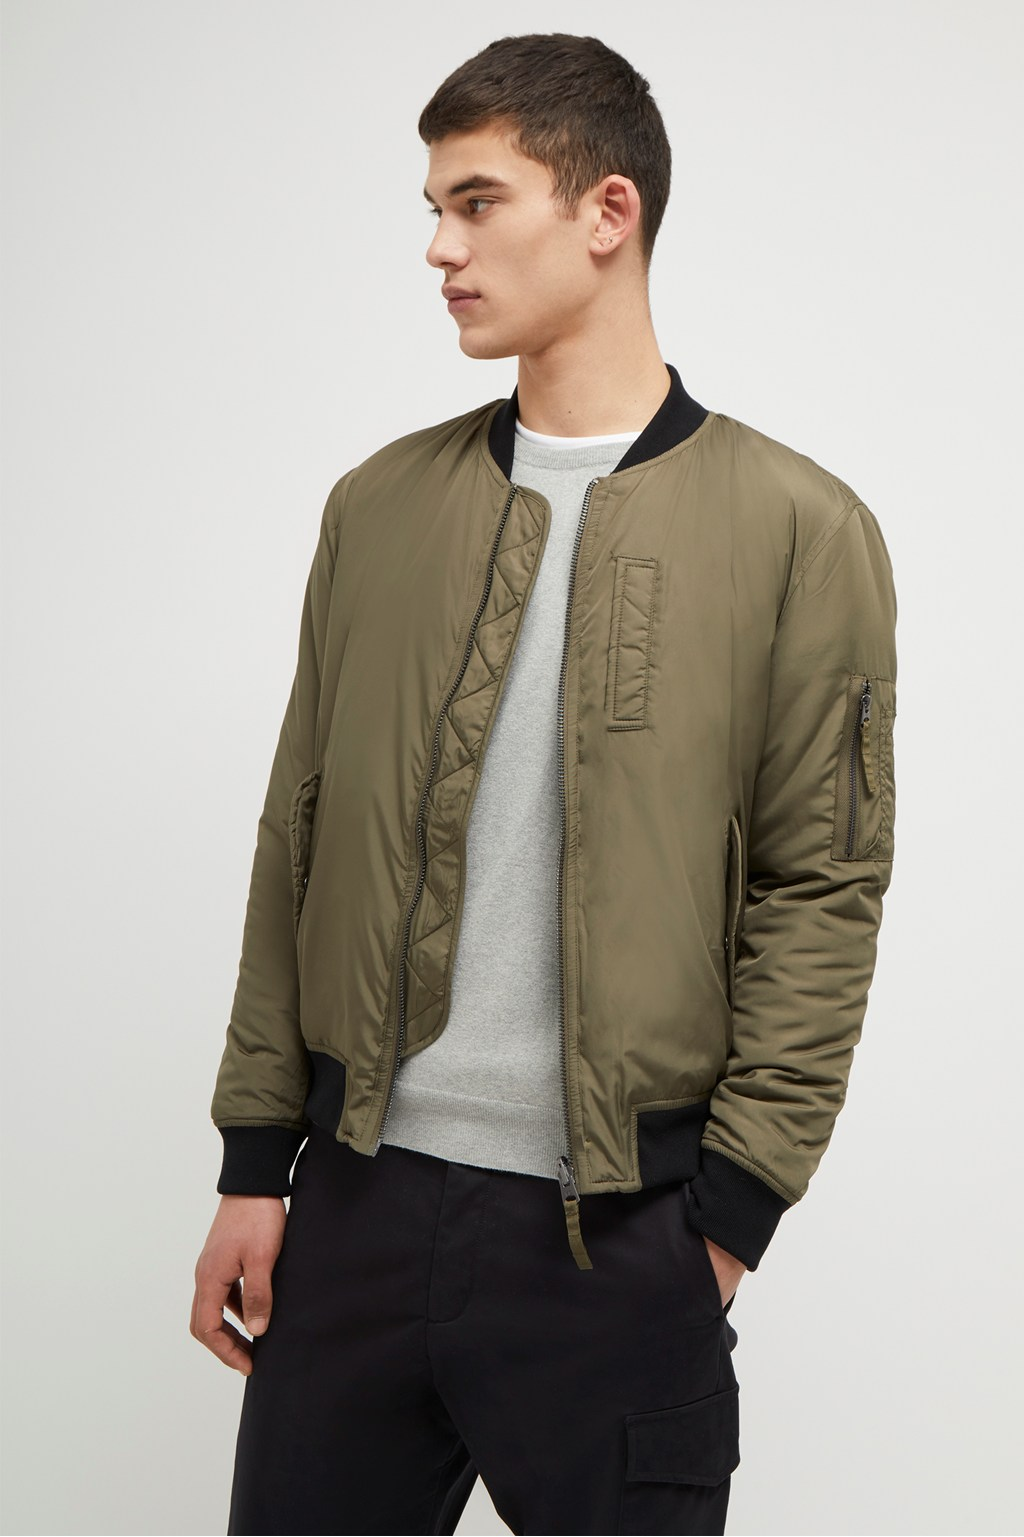 b4fb138c1d8e99 Parachute Contrast Reversible Bomber Jacket | Collections | French ...